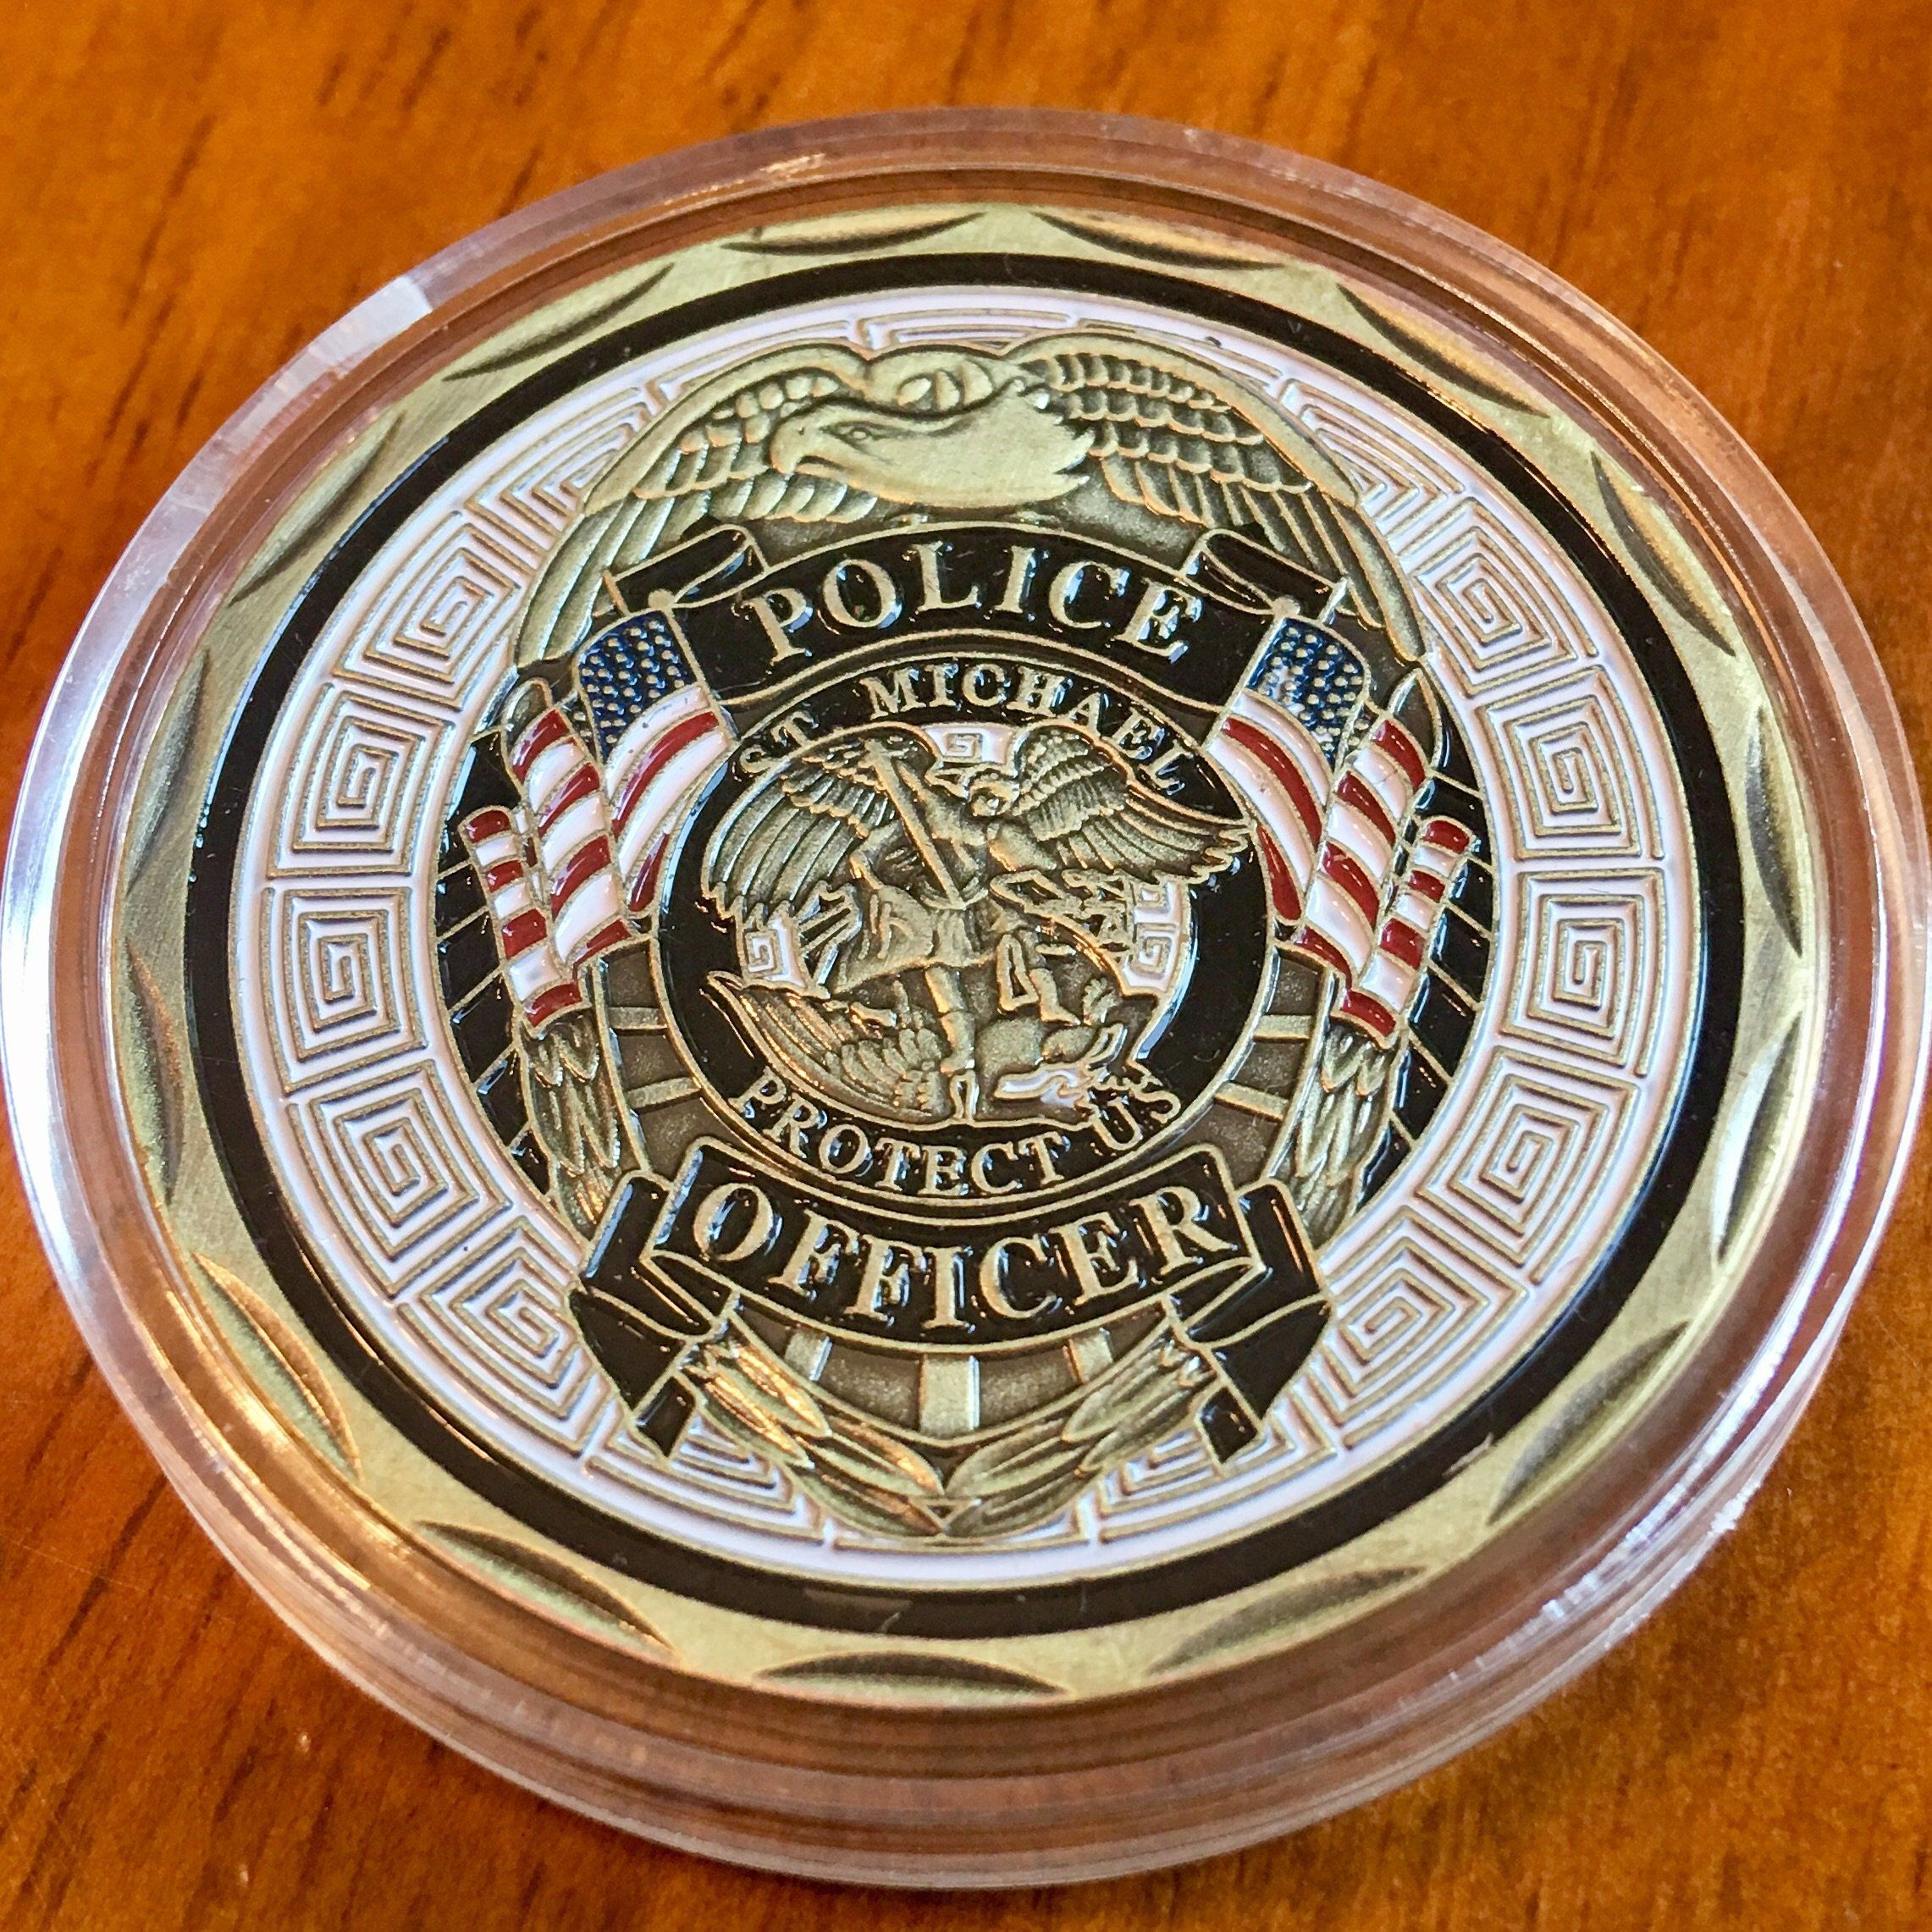 jewelry deco zoom medallion art police brooch patrol safety badge school listing il fullxfull patrolman